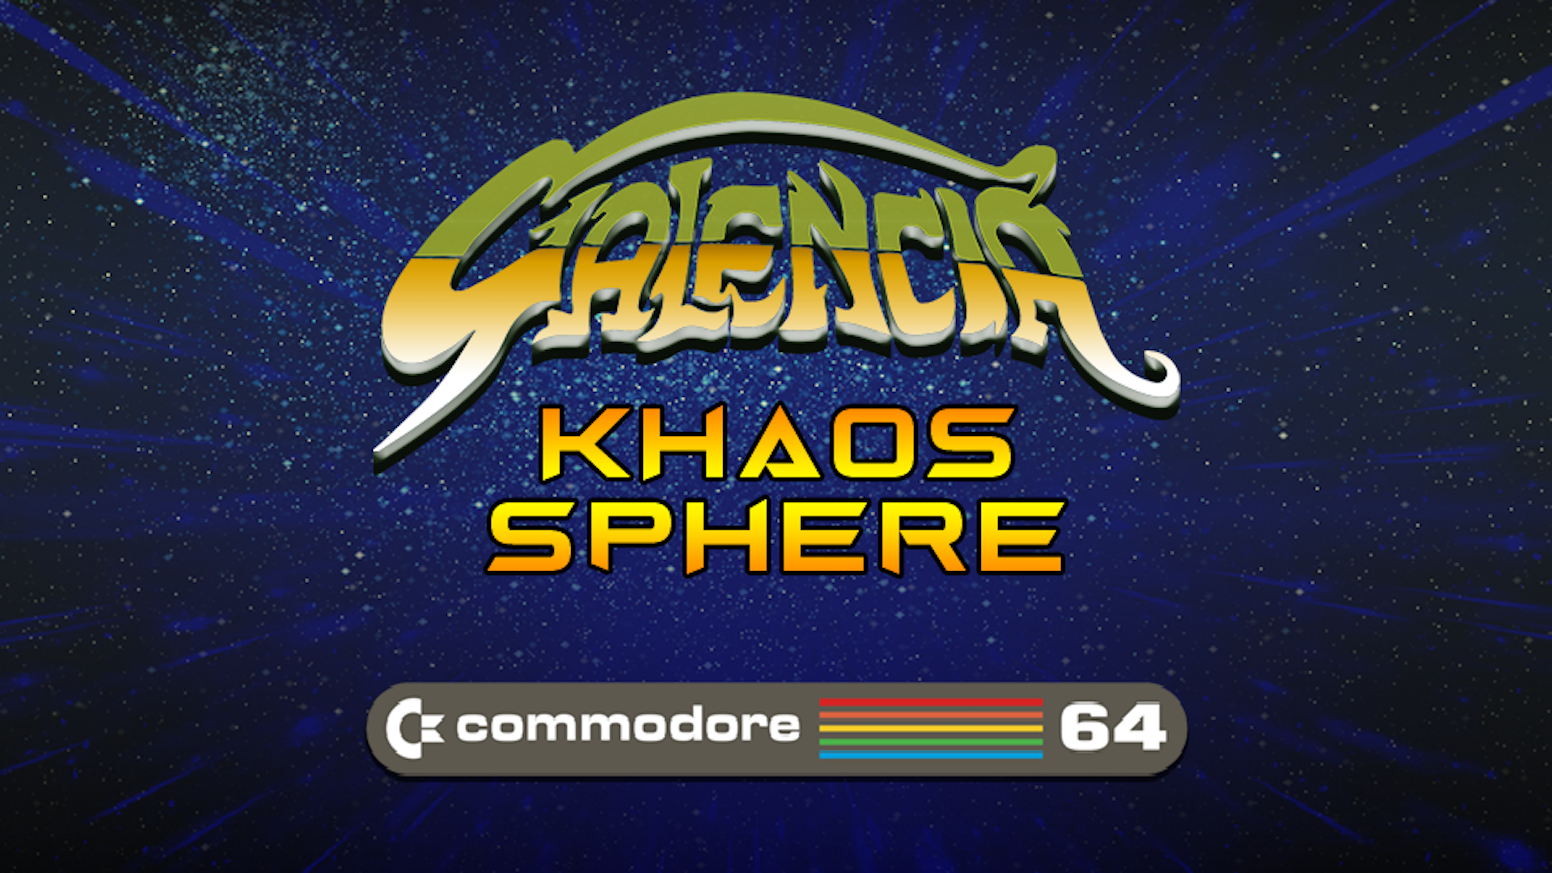 Galencia Khaos Sphere will be the sequel to Galencia,